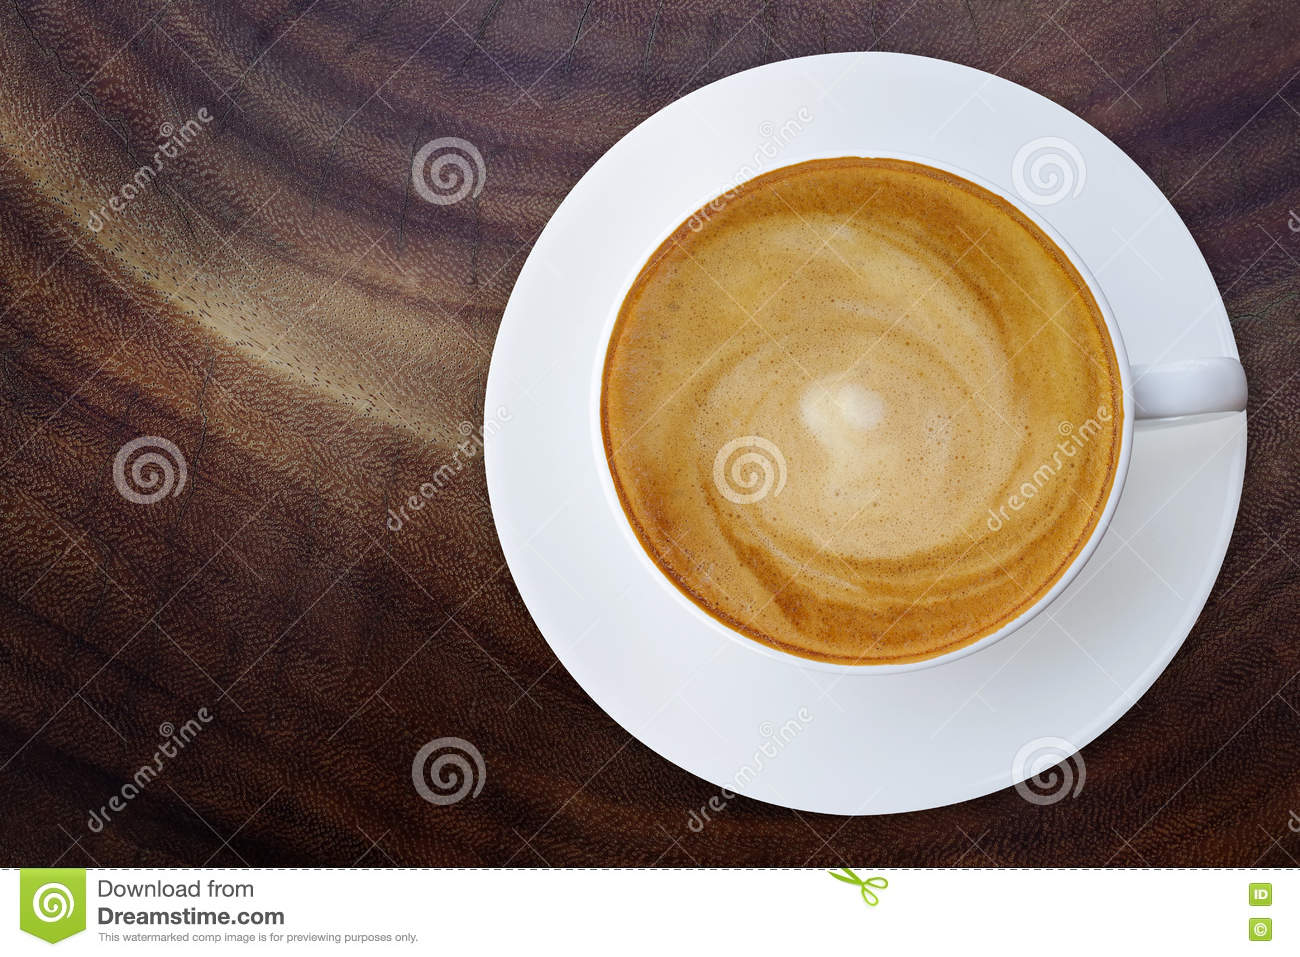 Top view of hot coffee cappuccino cup with saucer on wood texture abstract background.